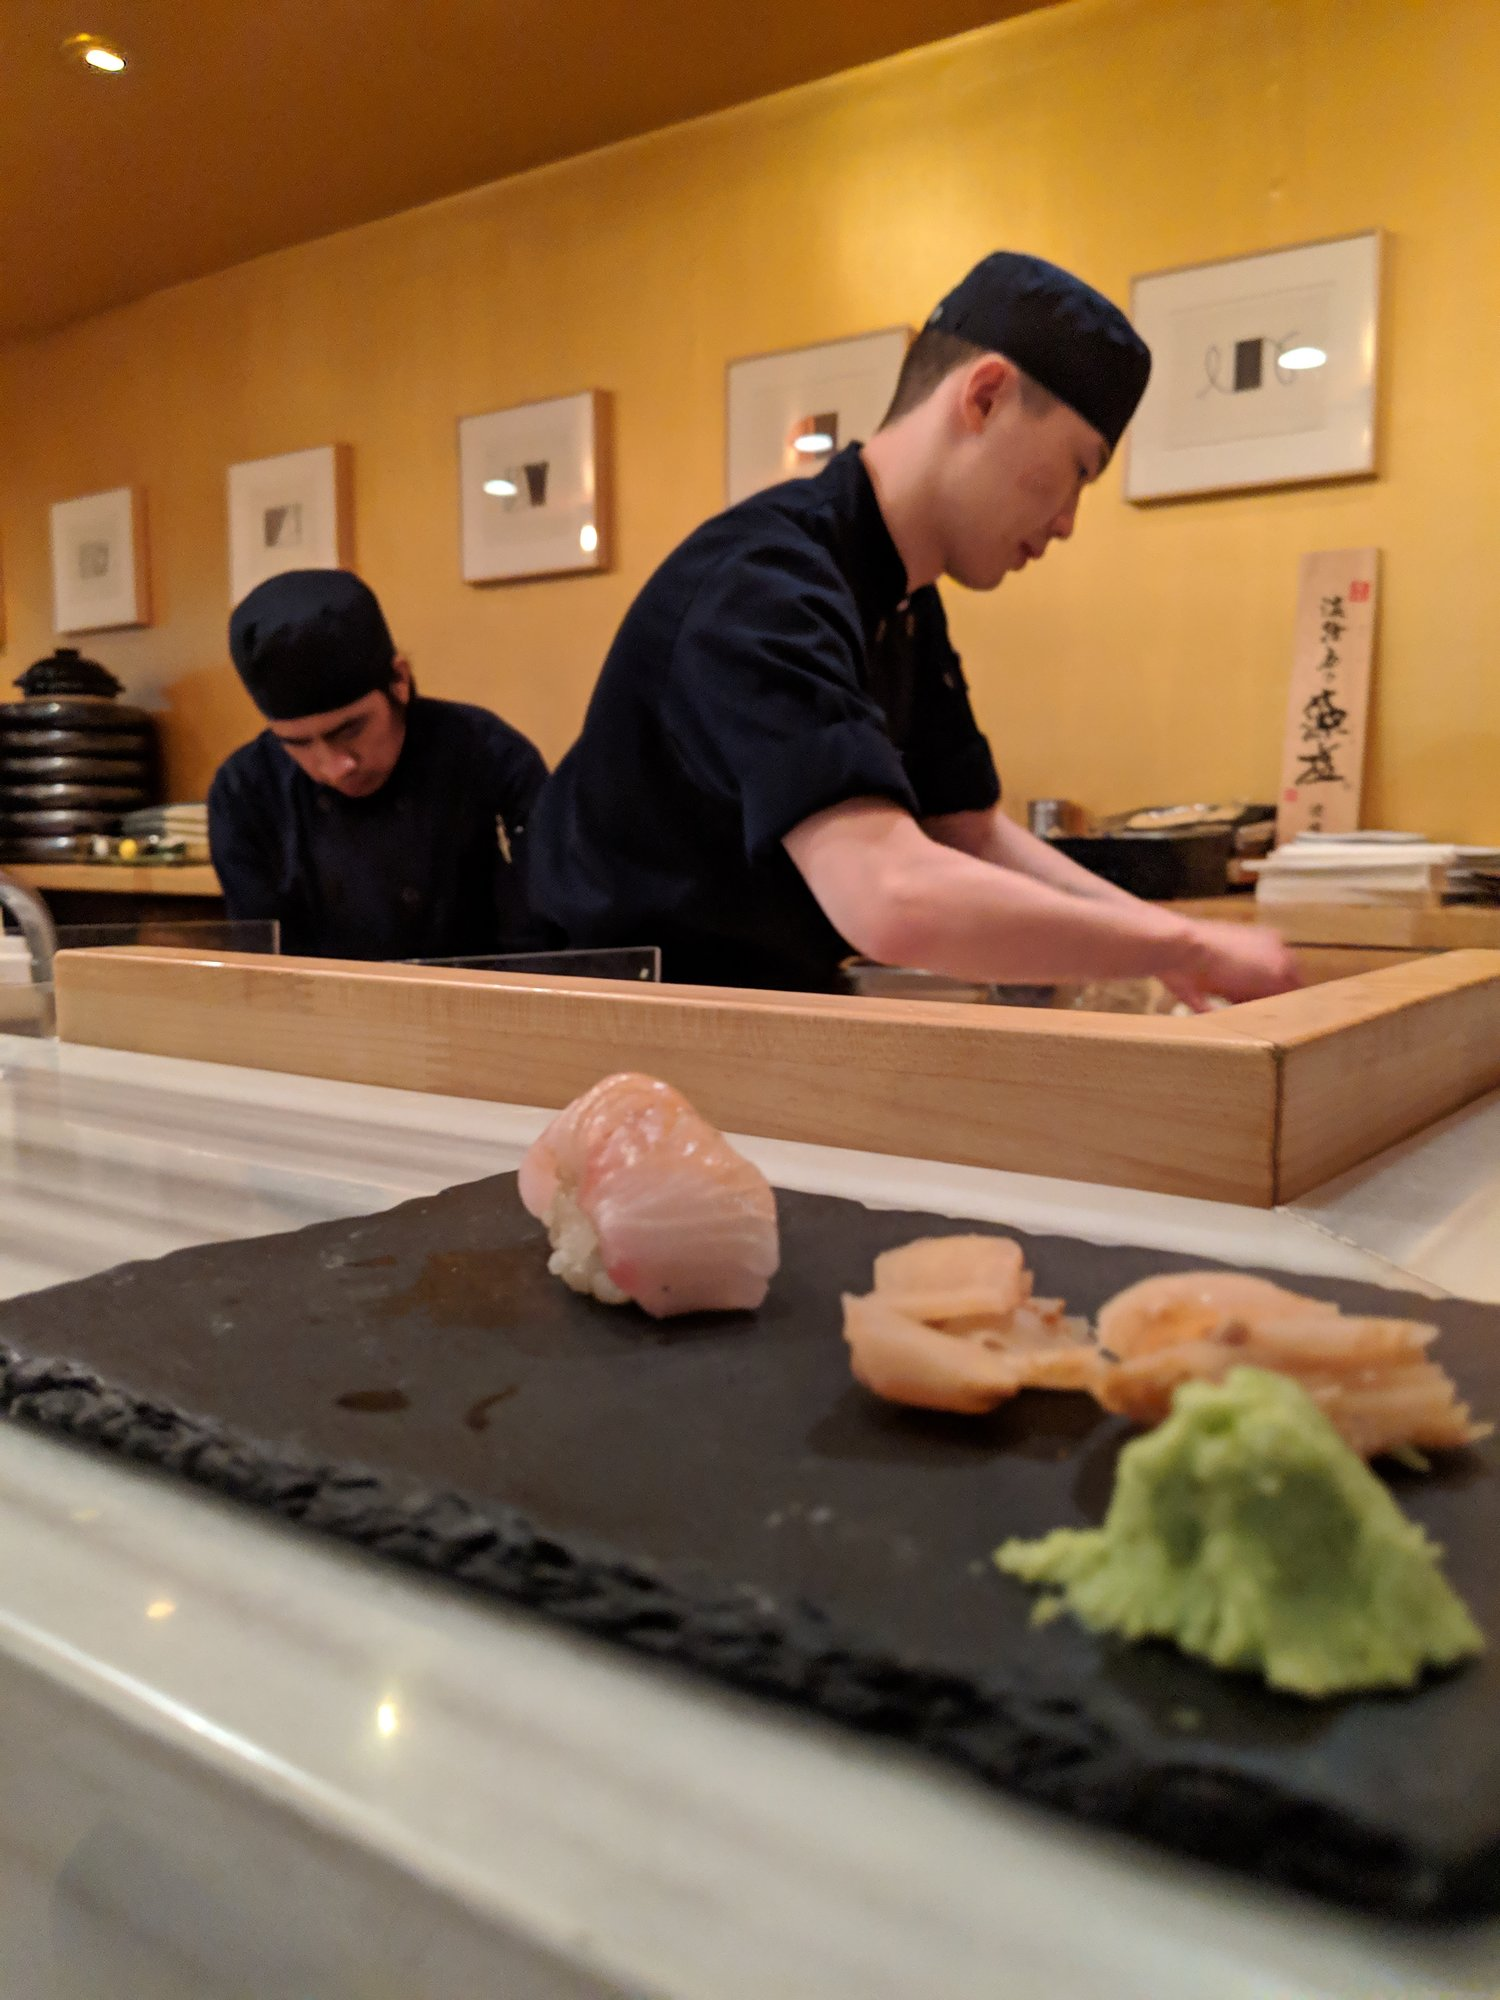 My lucky streak continued by showing up at Hamasaku on a Saturday night without a reservation and still getting slotted into the sushi bar. My sushi feast served as a celebratory reward for a long day of planning out NSPE-California's next five years alongside the Society's future leaders.